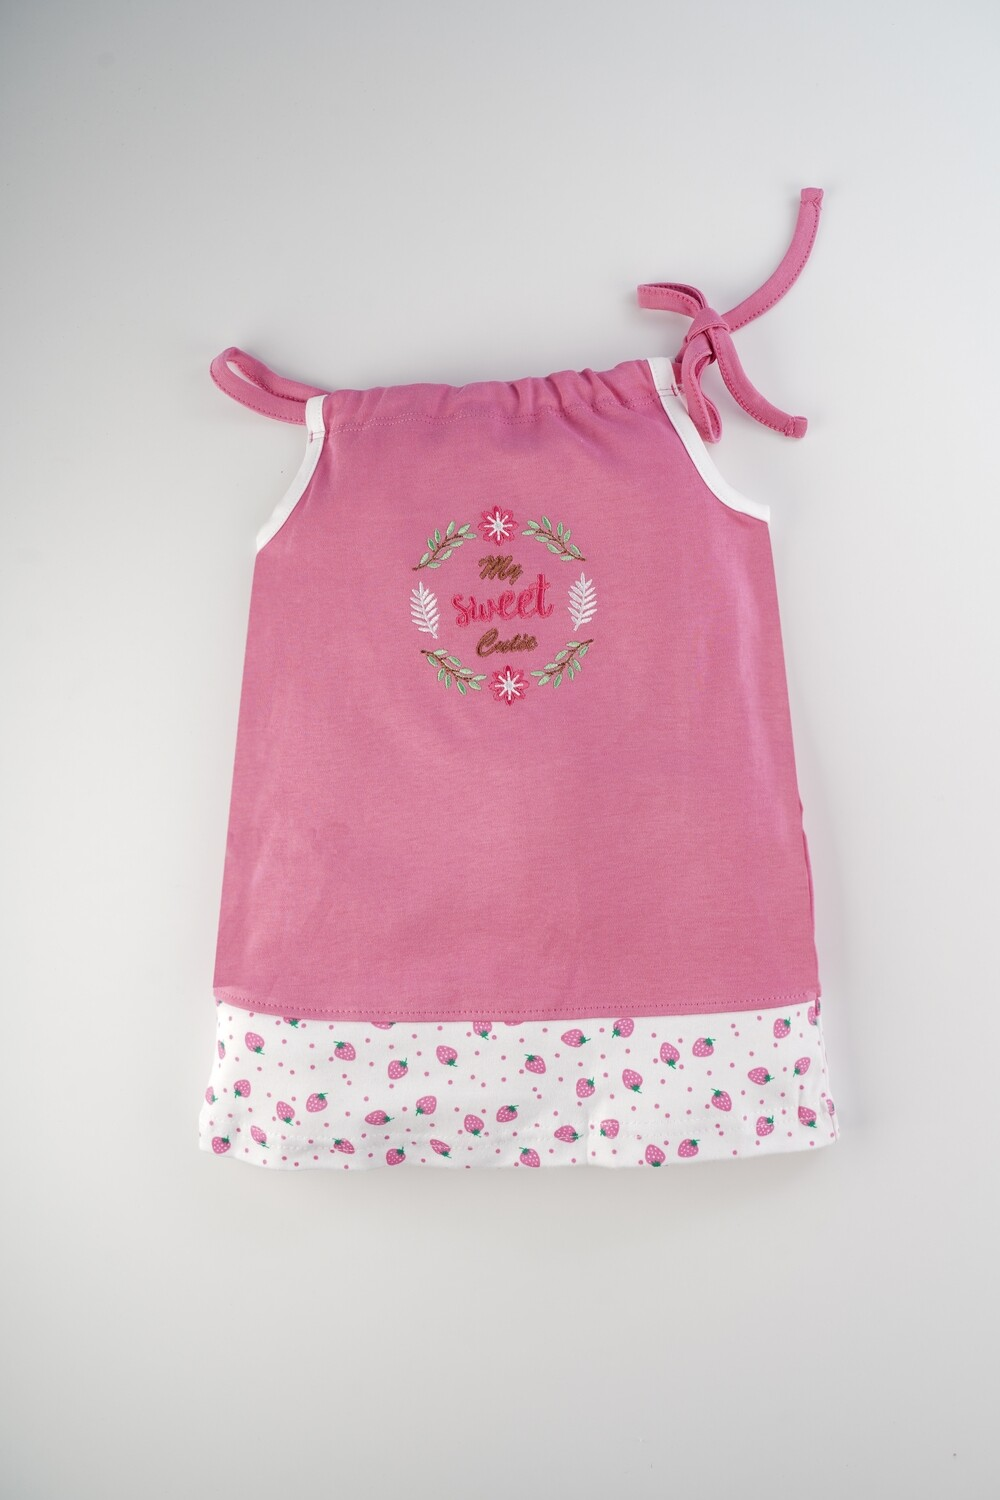 Blume Azalea Pink Shoulder Knot Sleeveless Strawberry Design Cotton Top With Bloomer for Baby Girls